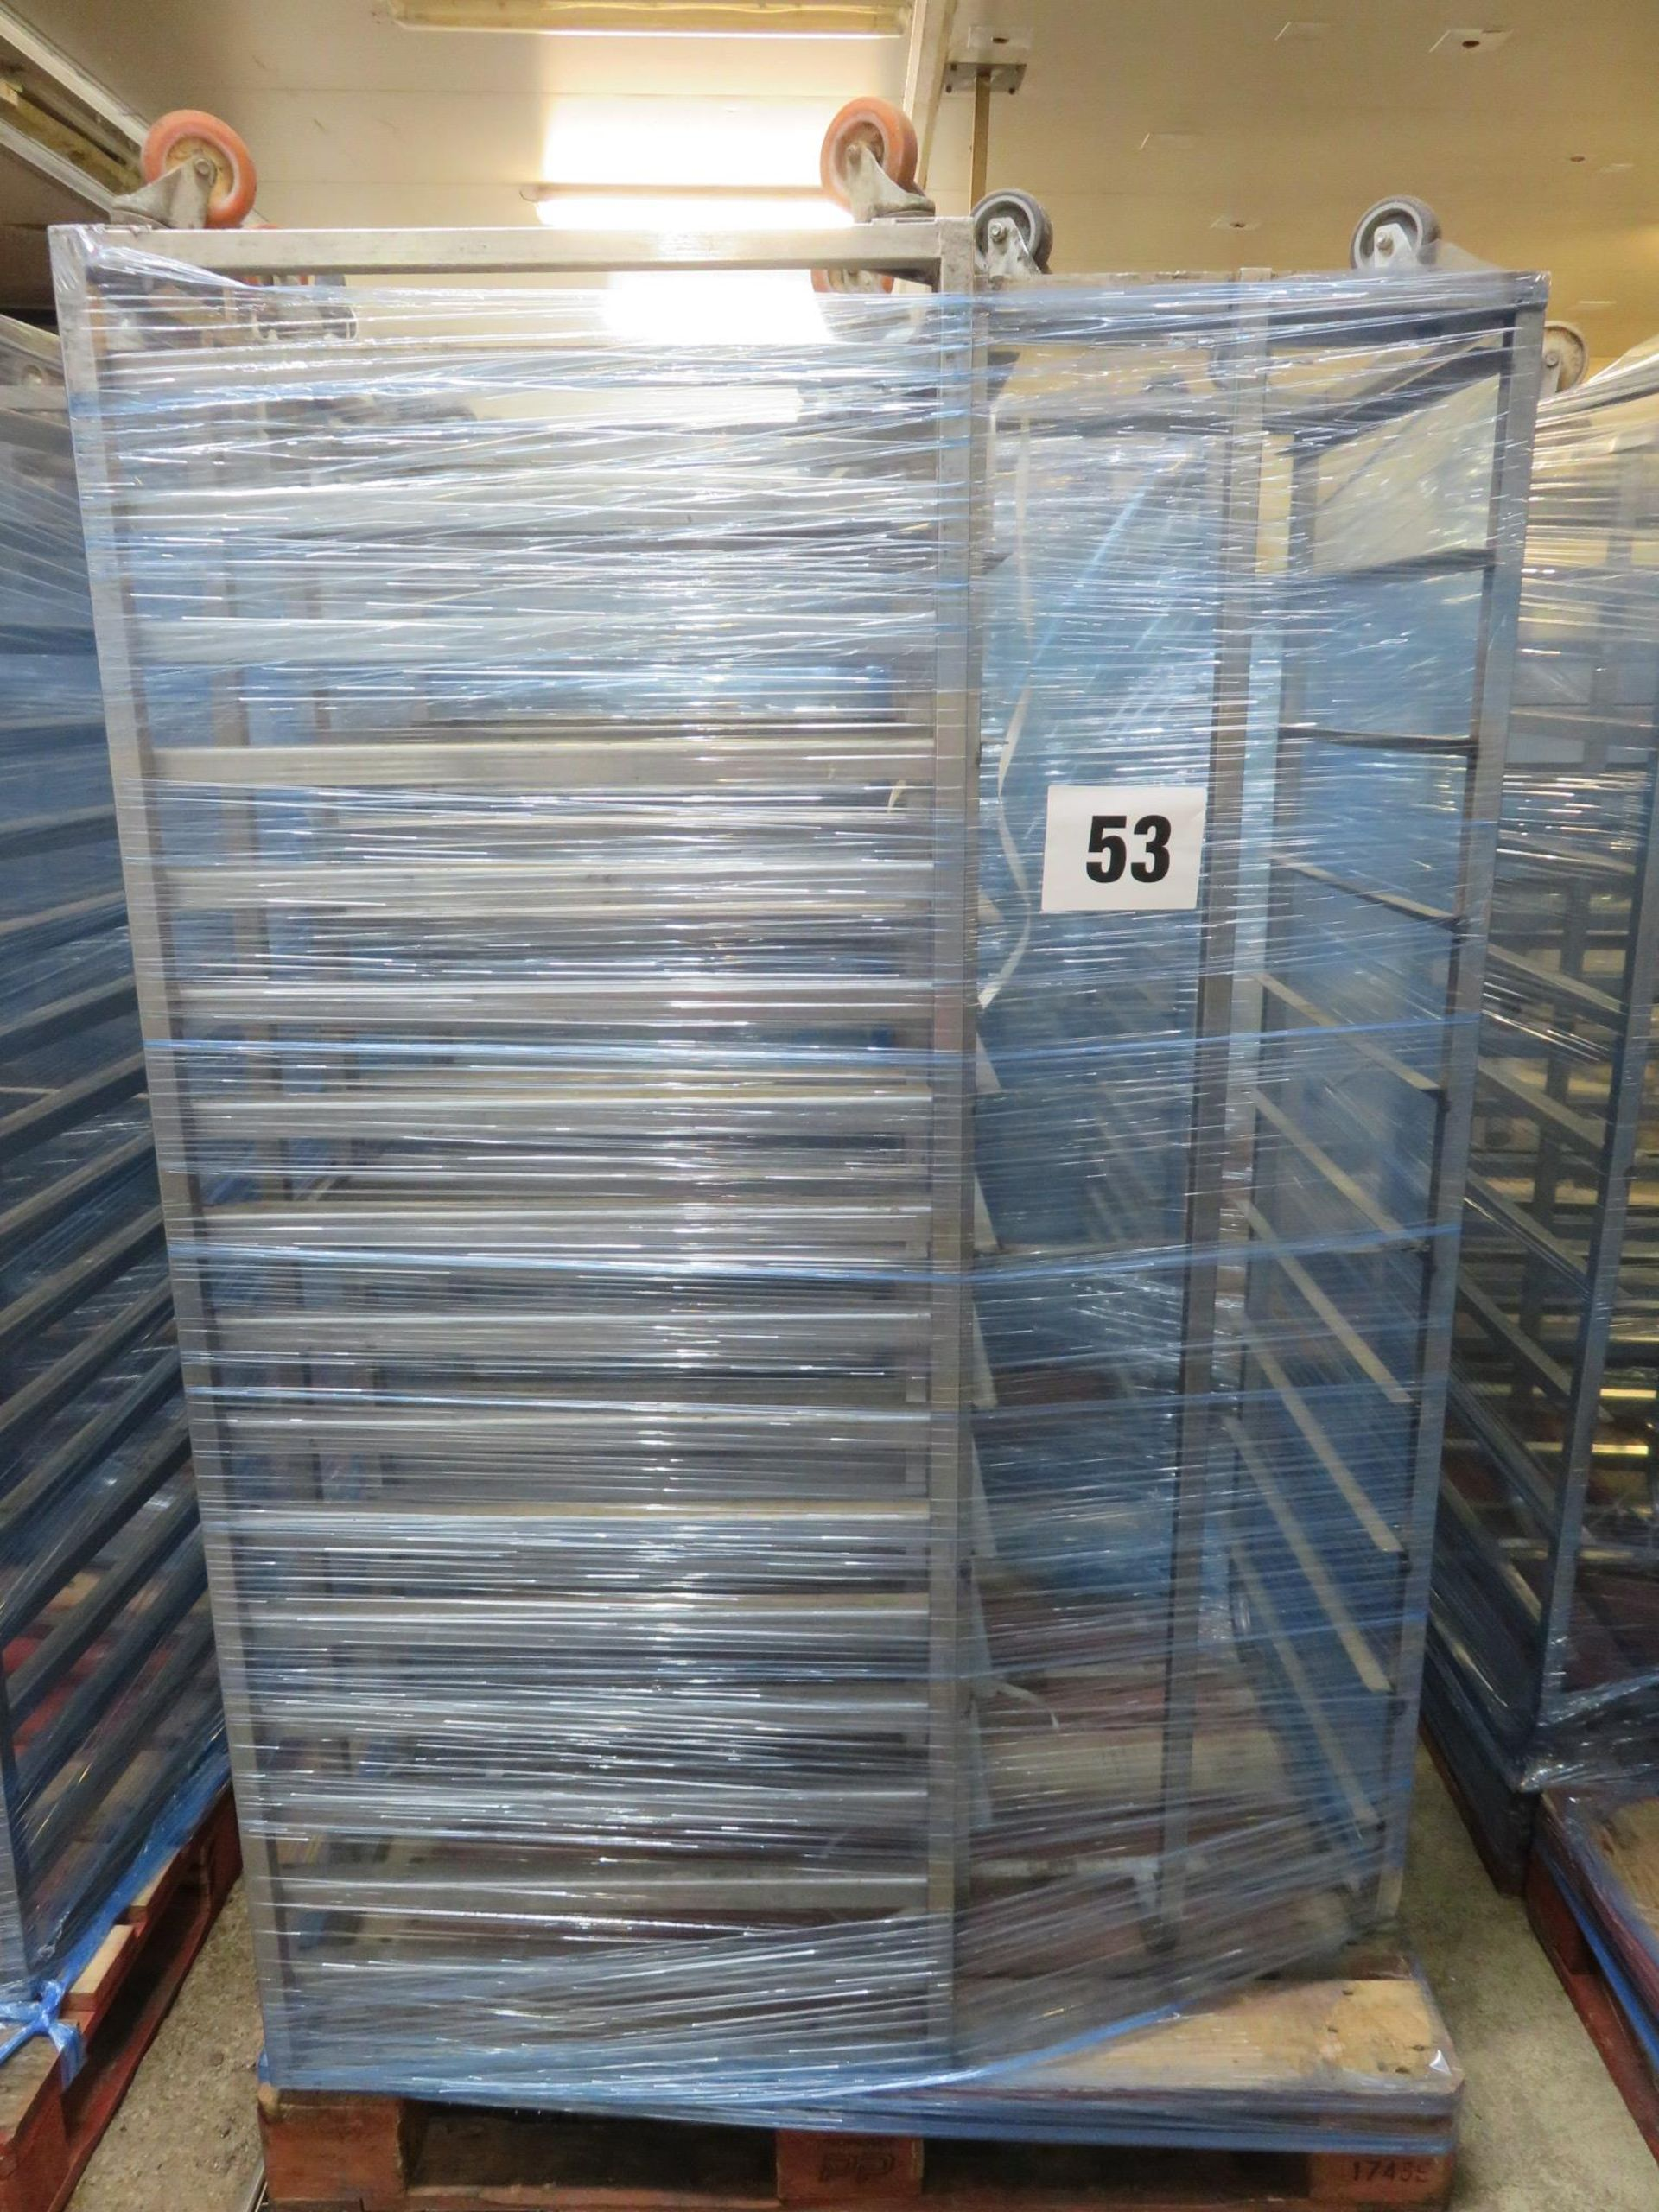 Lot 53 - 3 x S/s Racks:-2 x S/s Racks capable of taking 16 trays.Approx.430 x 650 x 1800mm high. LO£20